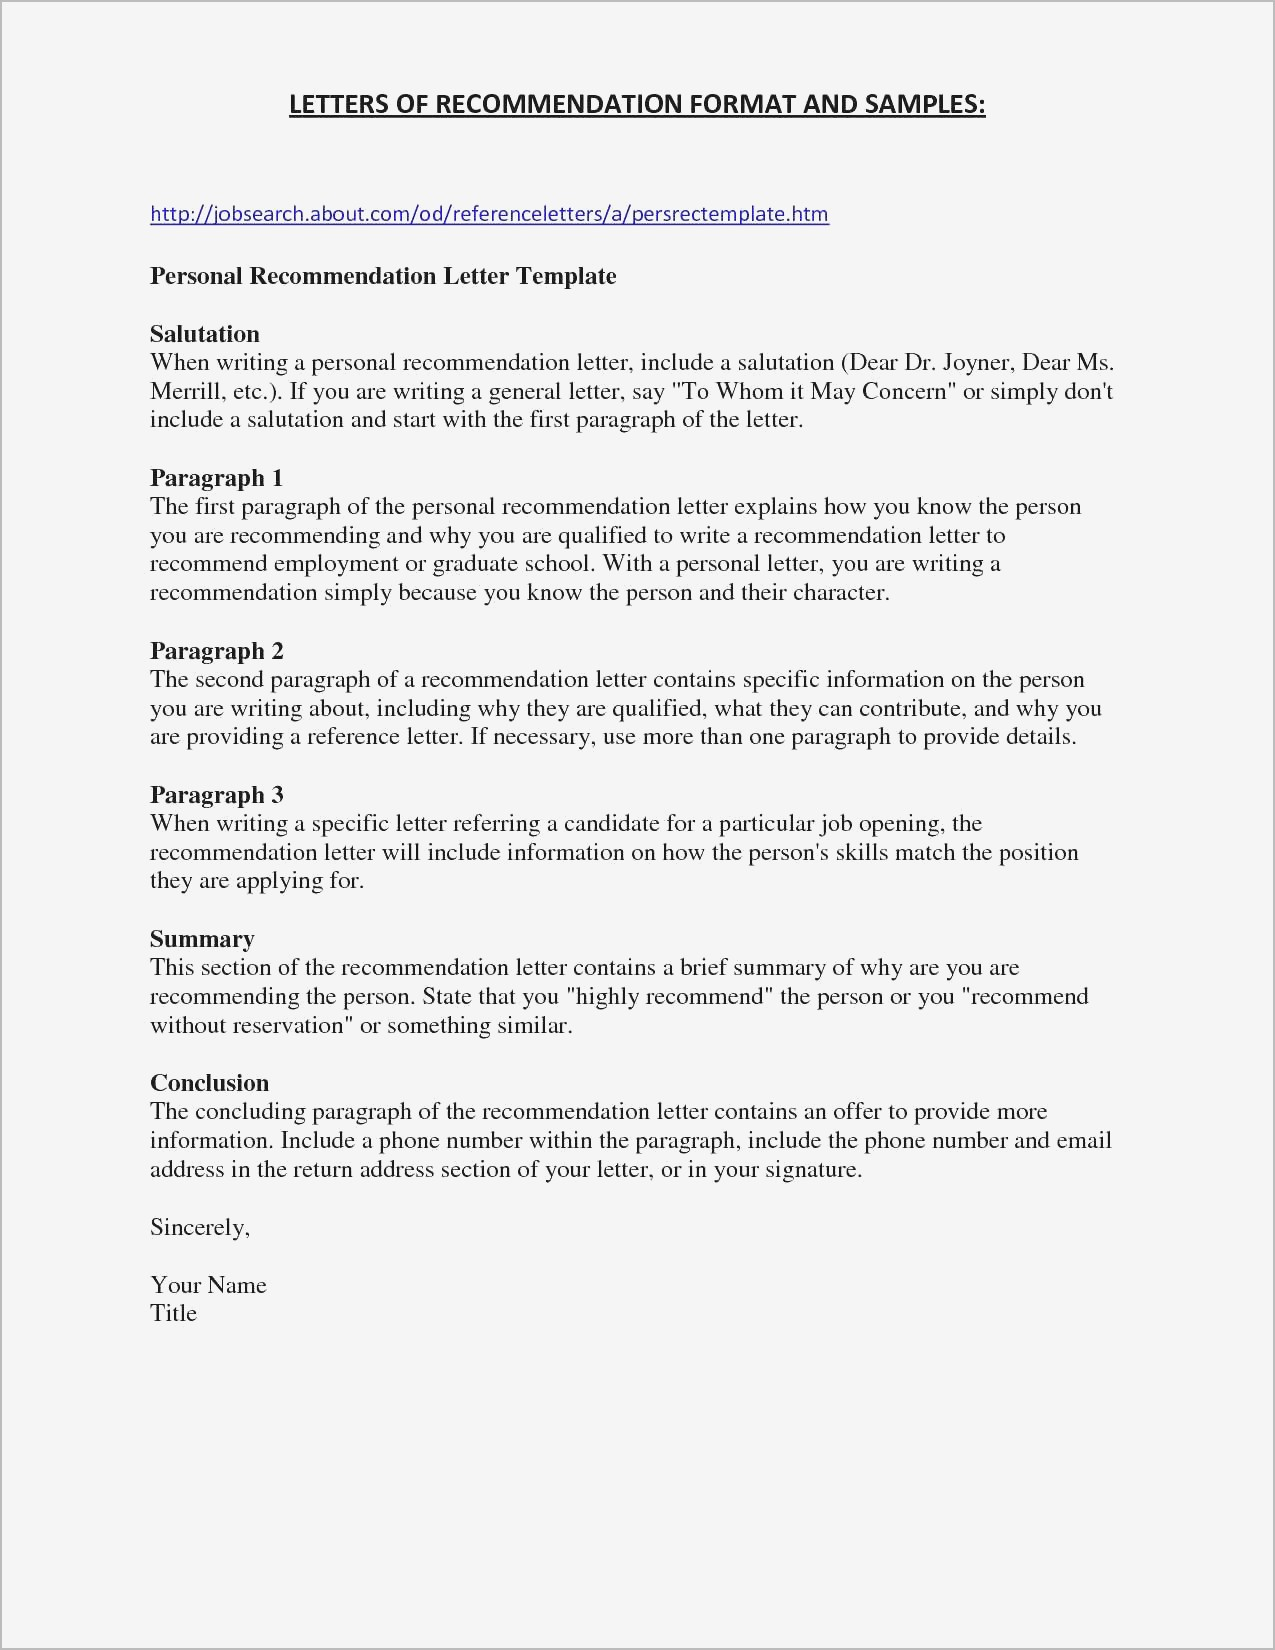 Free foreclosure letter template examples letter cover templates free foreclosure letter template short cover letter sample pdf format spiritdancerdesigns Images